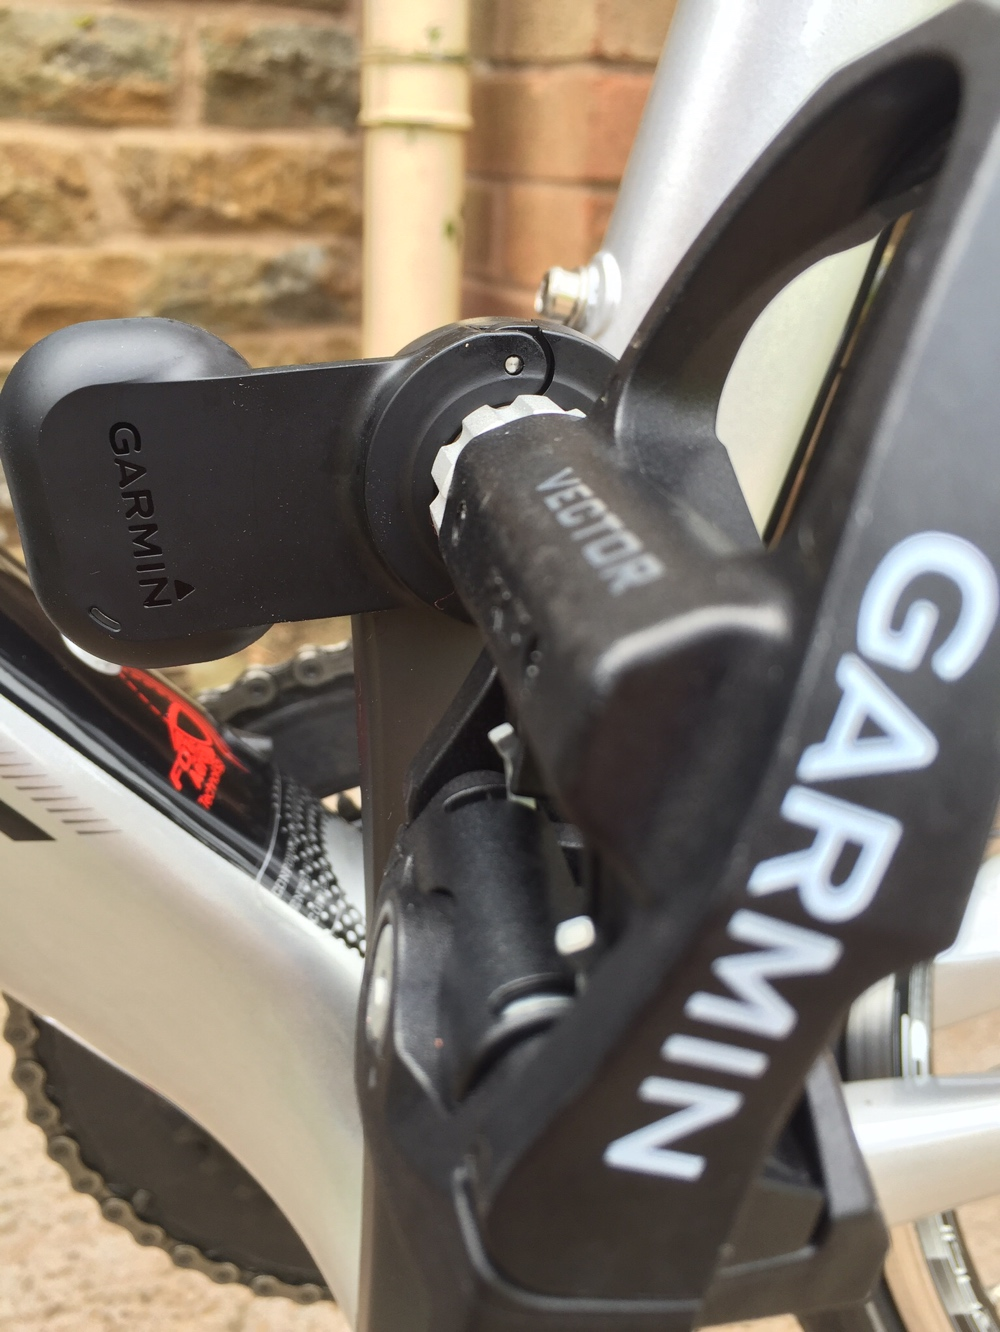 TitaniumGeek Pod Garmin Vector 2 review - Pedal Based Power Meter Vector Stages power meter pedals garmin cycling dynamics cycling